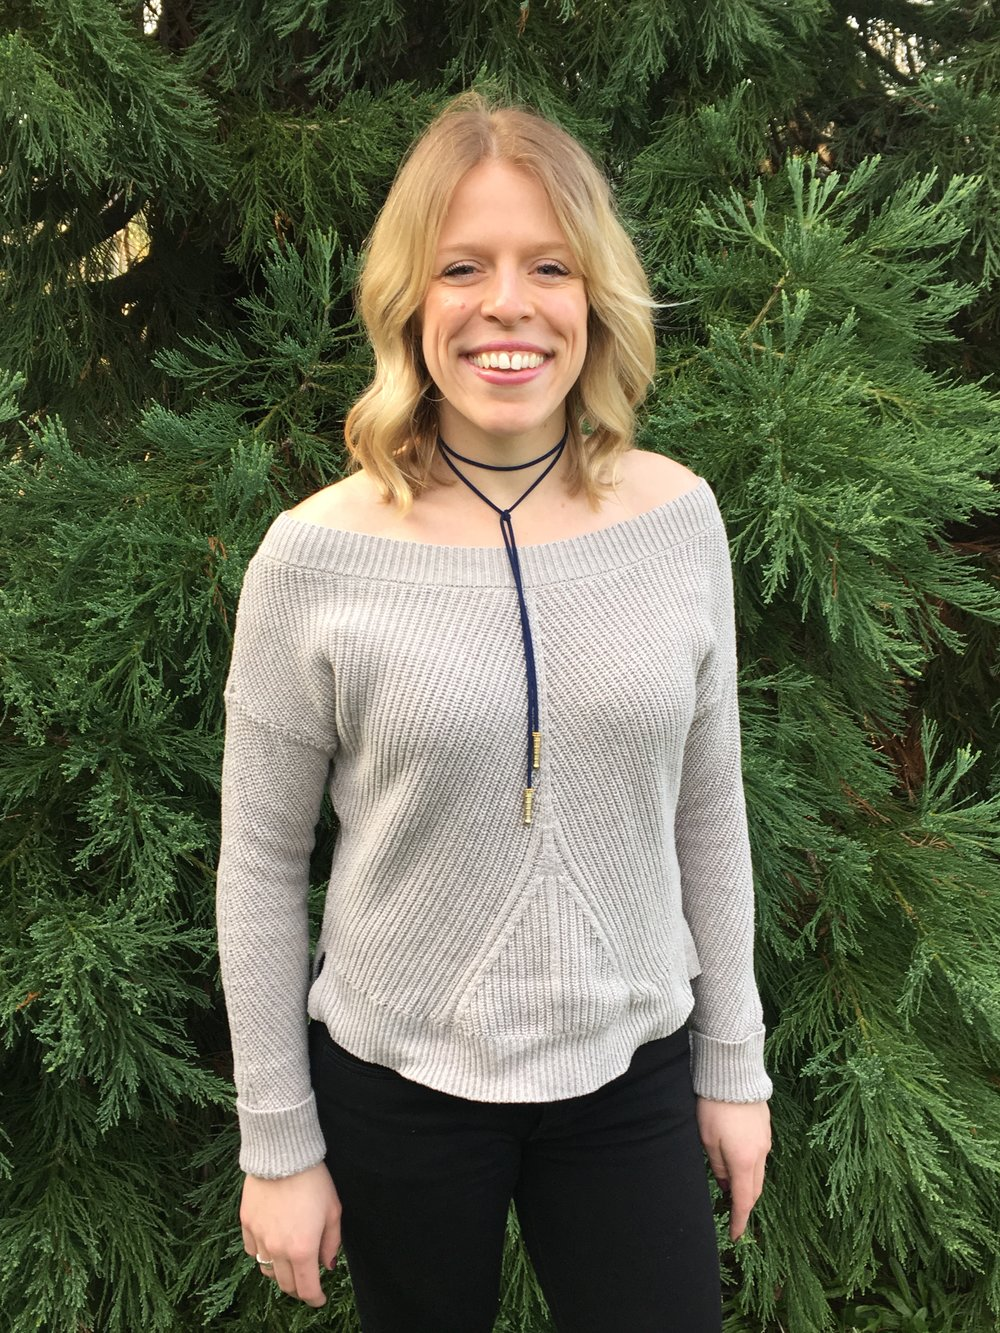 Zaleska Lariat Indigo Choker paired with Aerie sweater and American Eagle Jeans